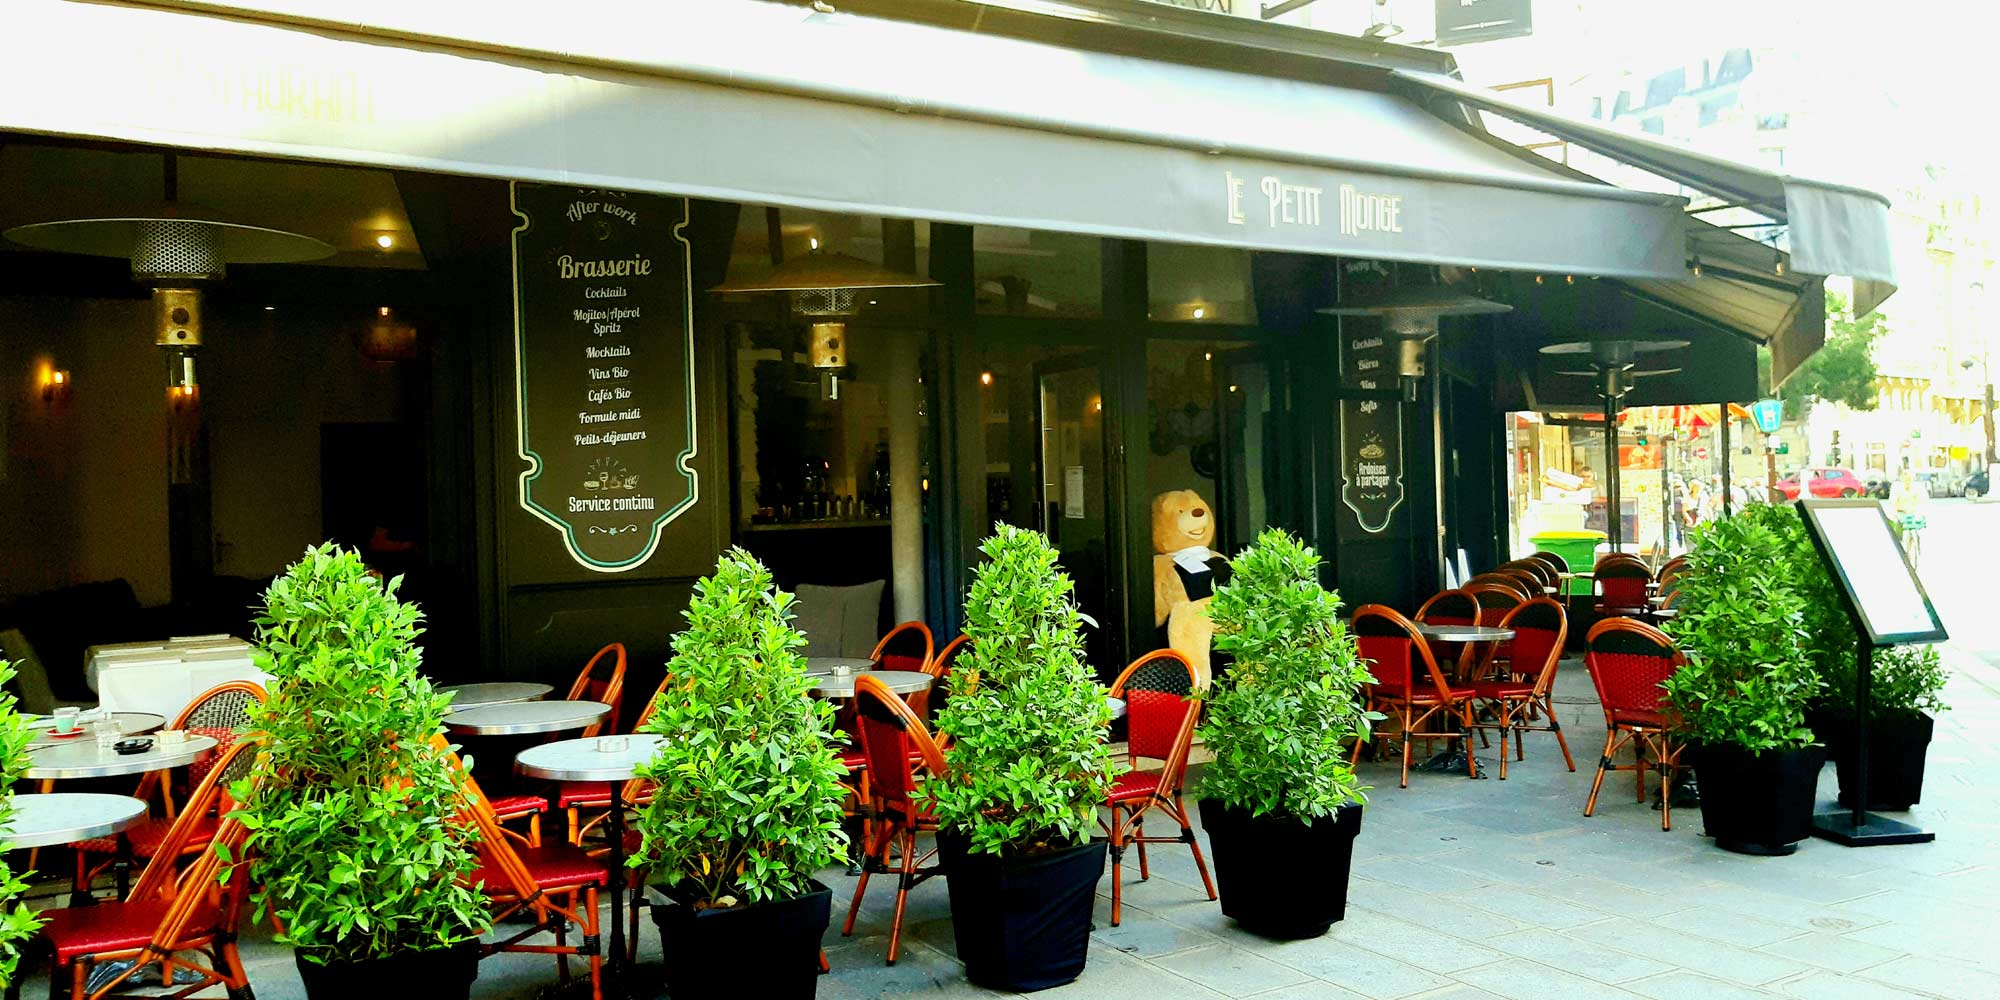 Brunch Le Petit Monge (75005 Paris)